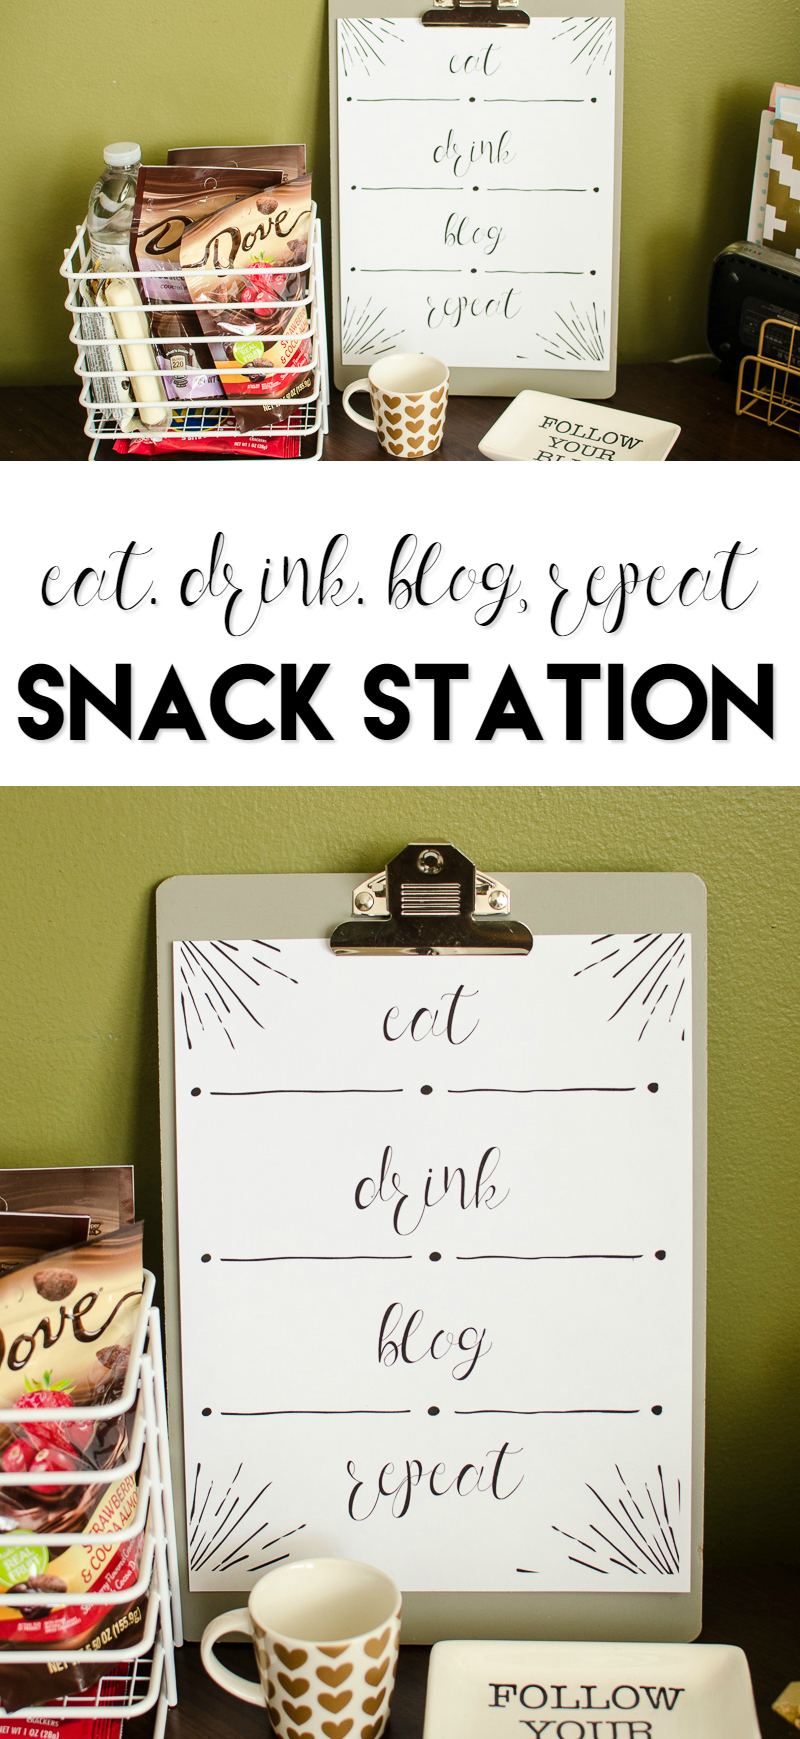 eat drink blog repeat snack station